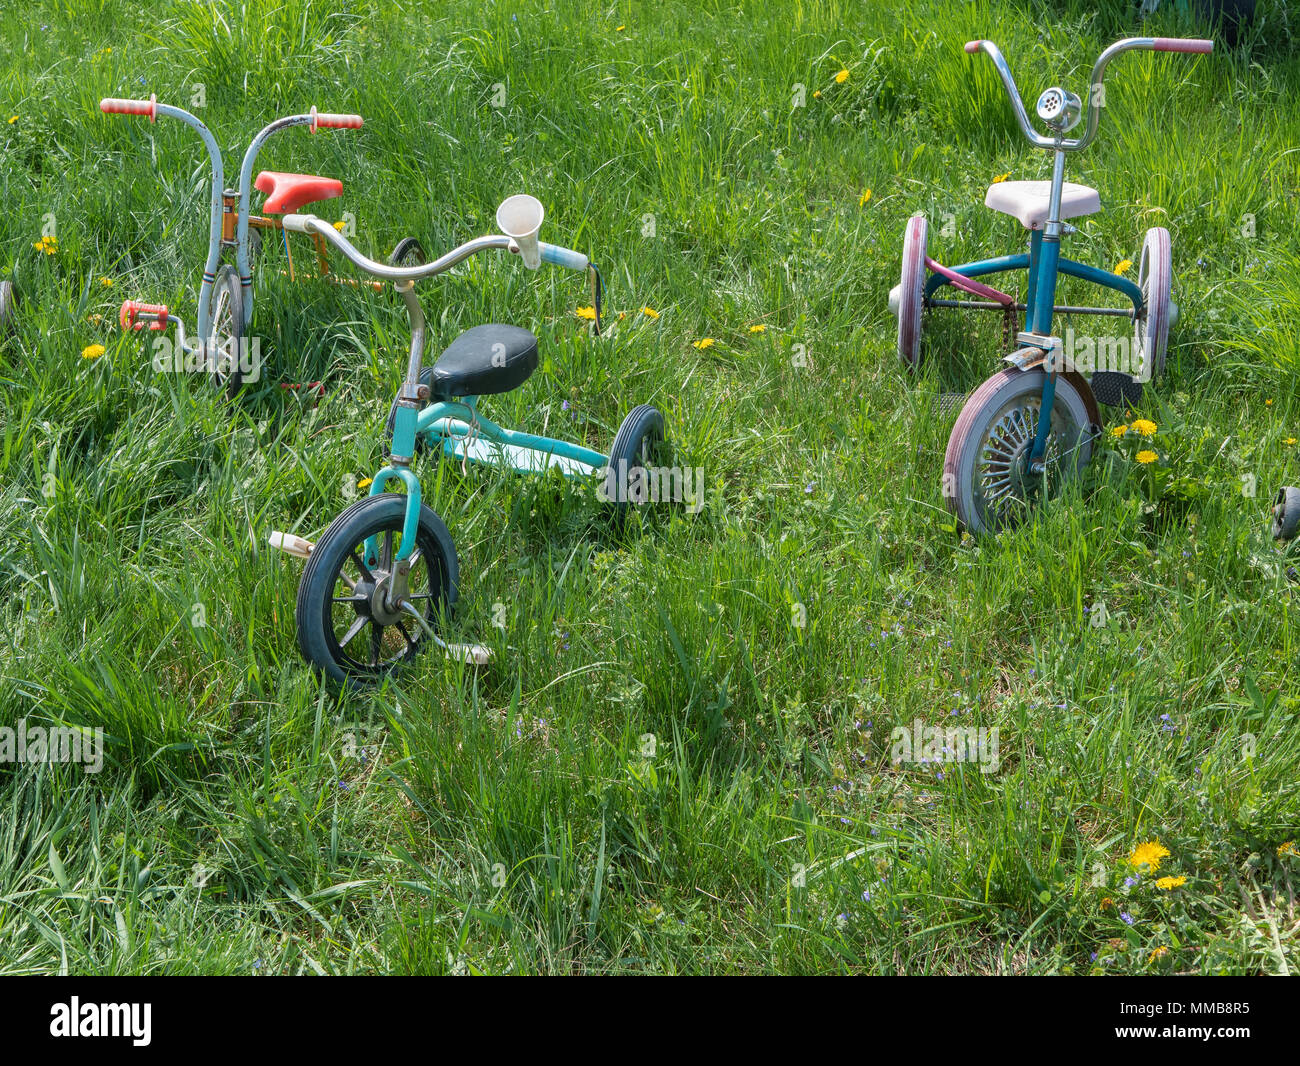 Three Old Vintage Retro Child Baby Tricycles Three Wheels Bikes On A Green Grass At Shiny Summer Day Stock Photo Alamy